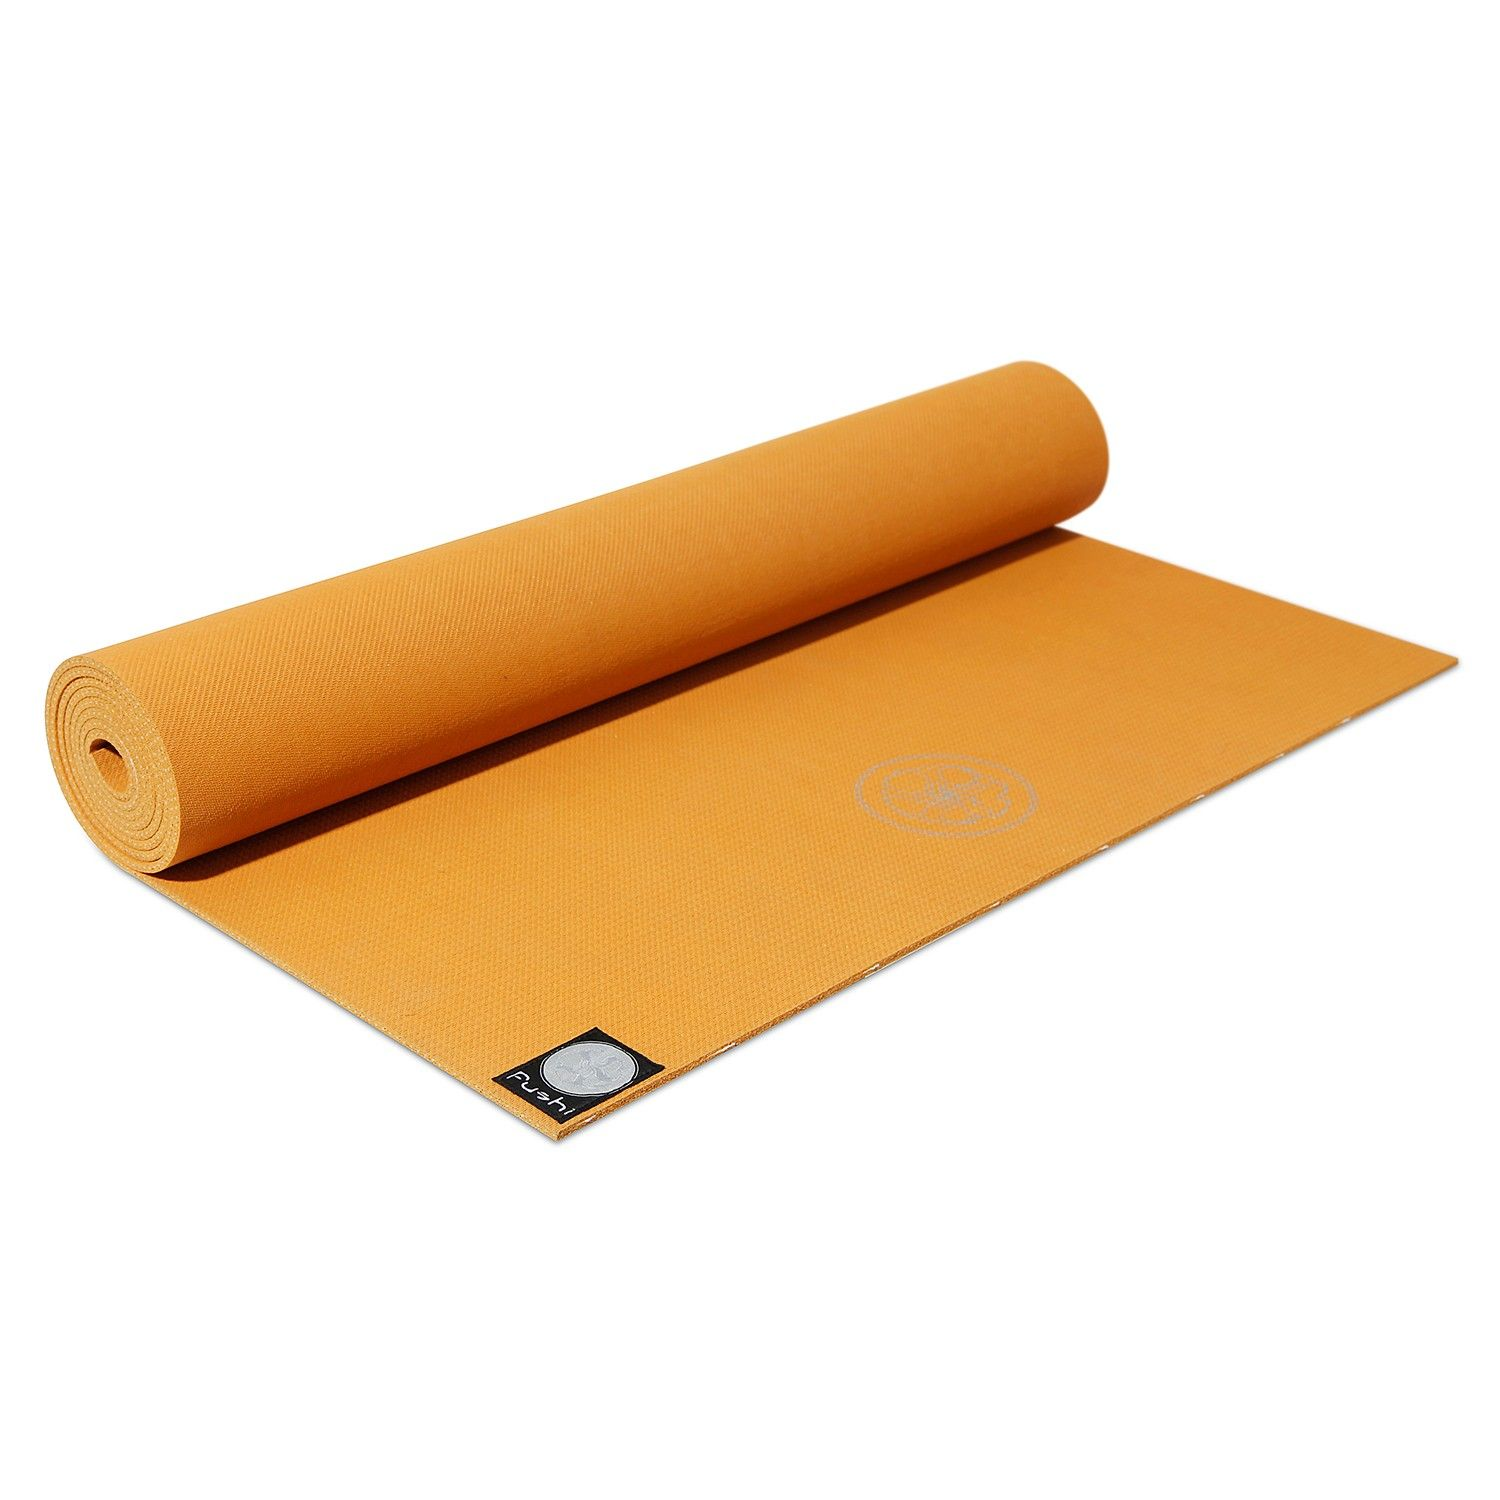 product printed custom mat microfiber and printing colorful rubber natural mats yoga